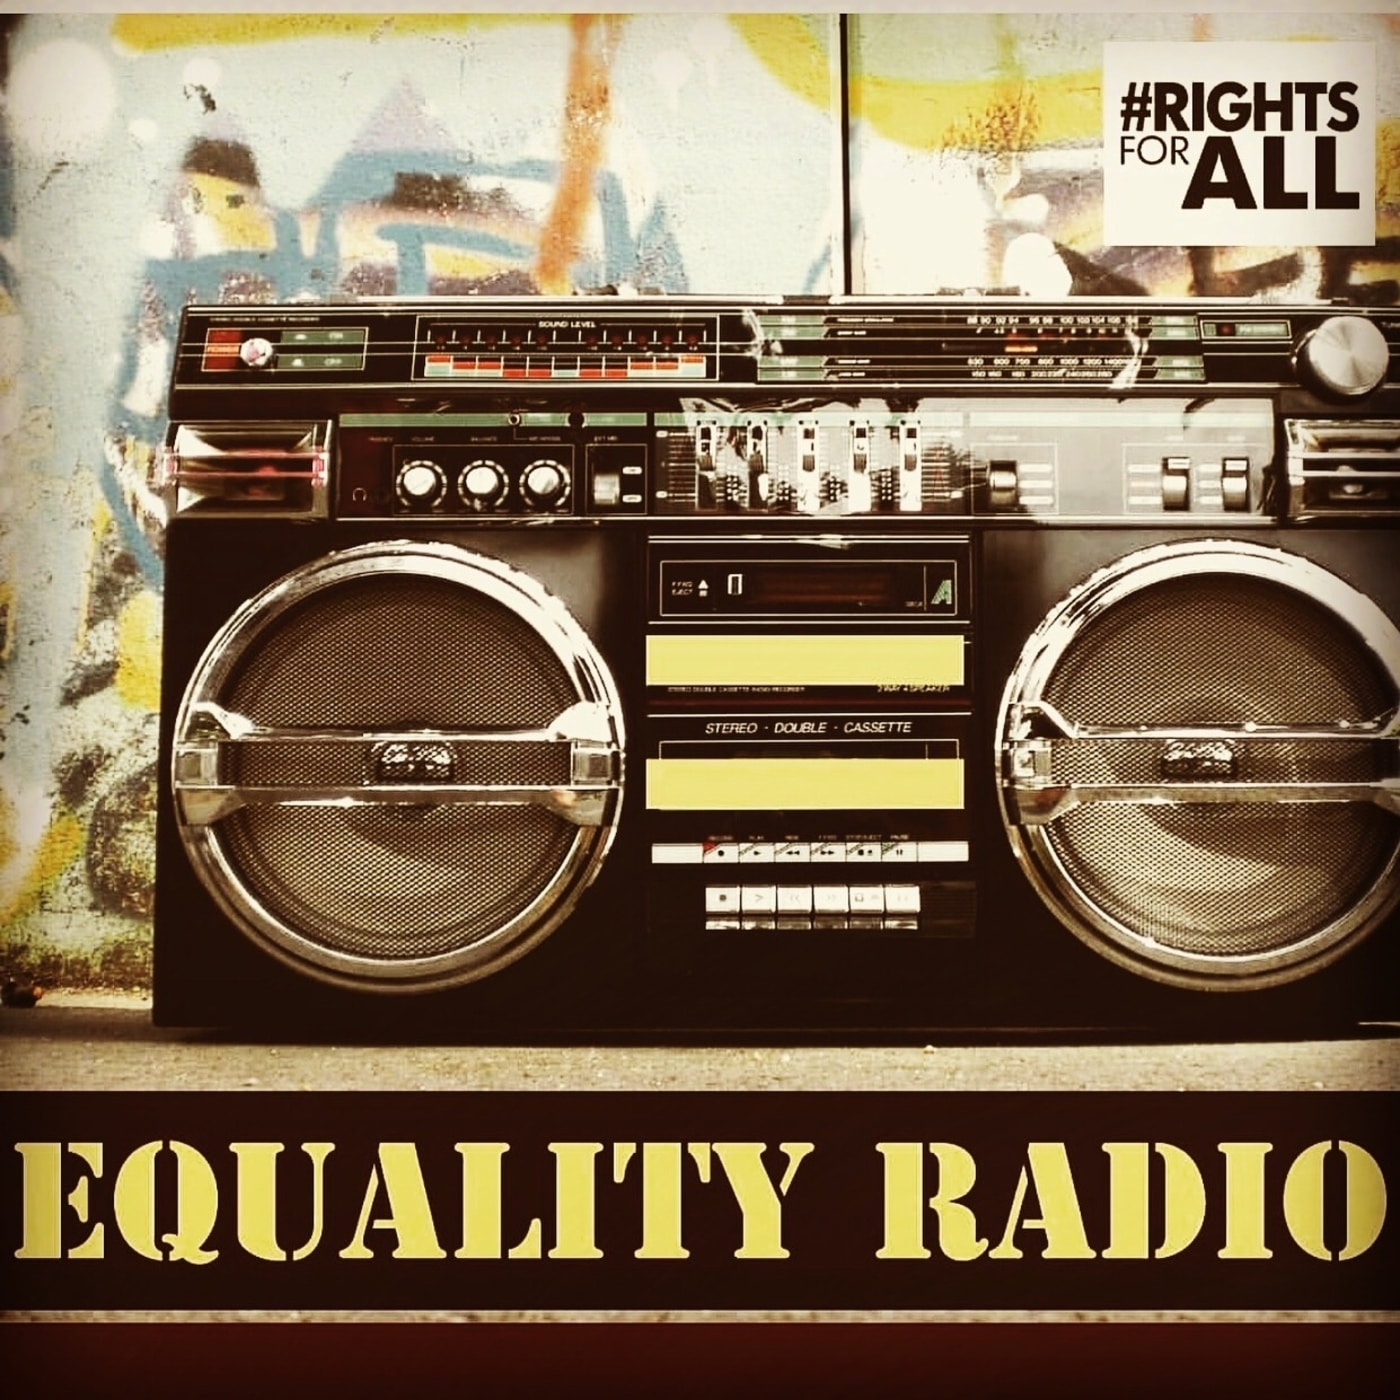 Equality Radio with Dj Proper - Episode 2 - Dj Qbert